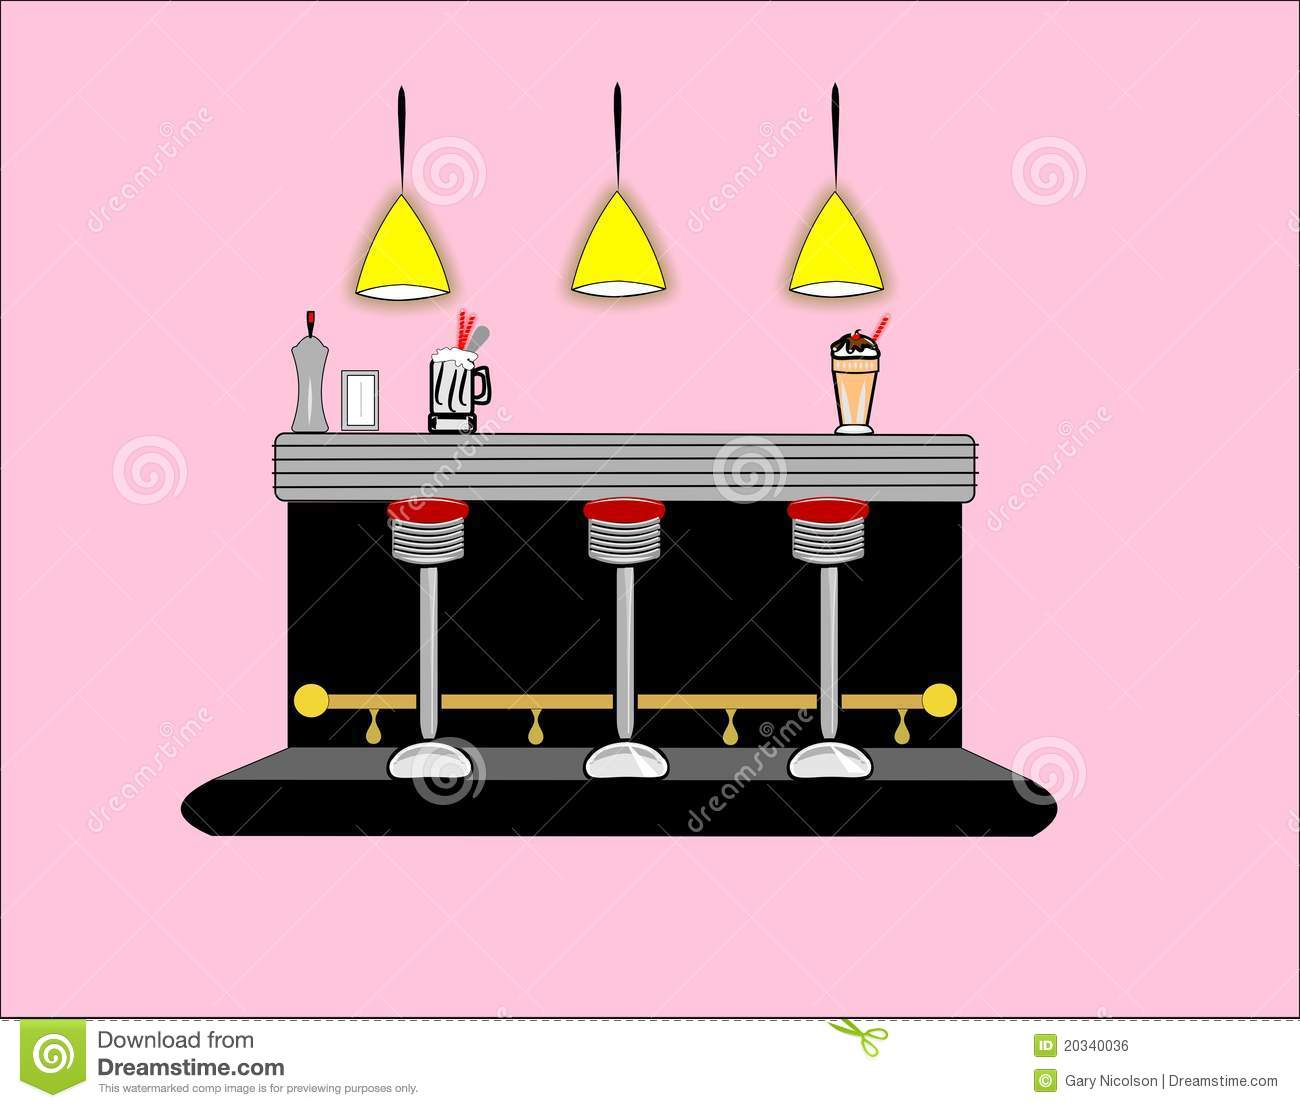 50s Diner Interior Royalty Free Stock Image Image 20340036